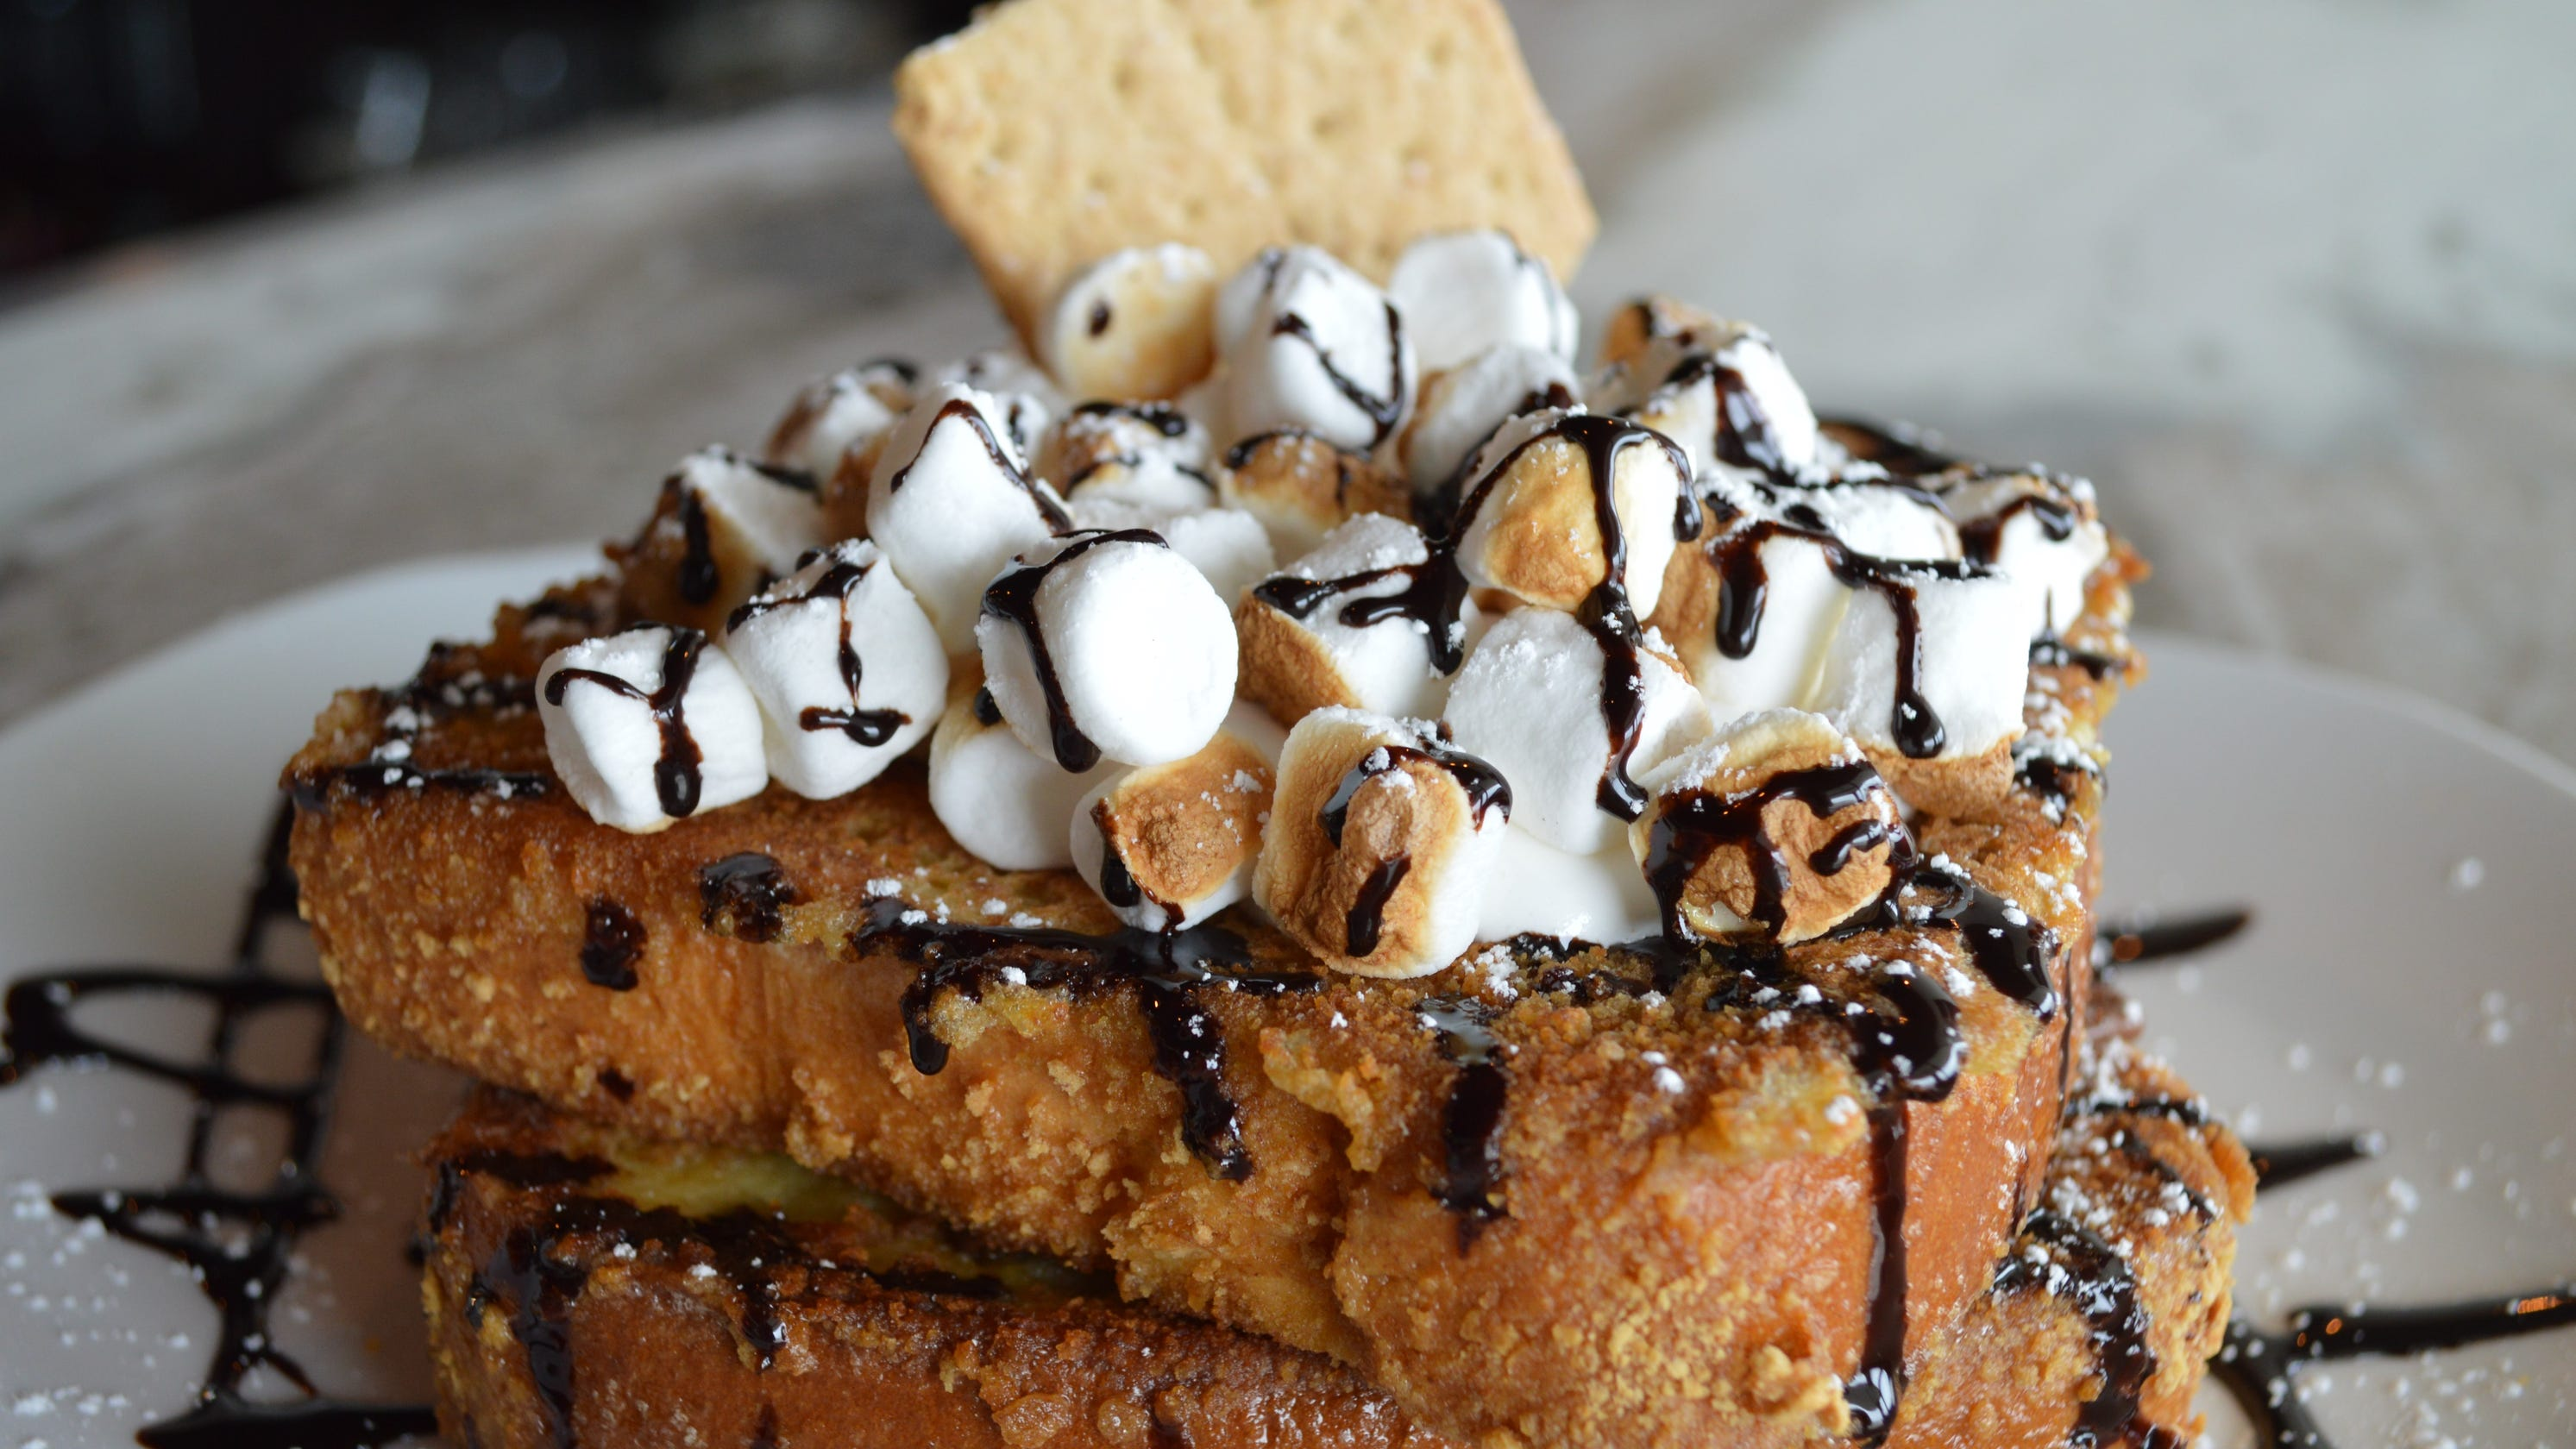 Honey Butter Cafe, a new breakfast and lunch spot in Franklin, has an Instagram nook and s'mores french toast